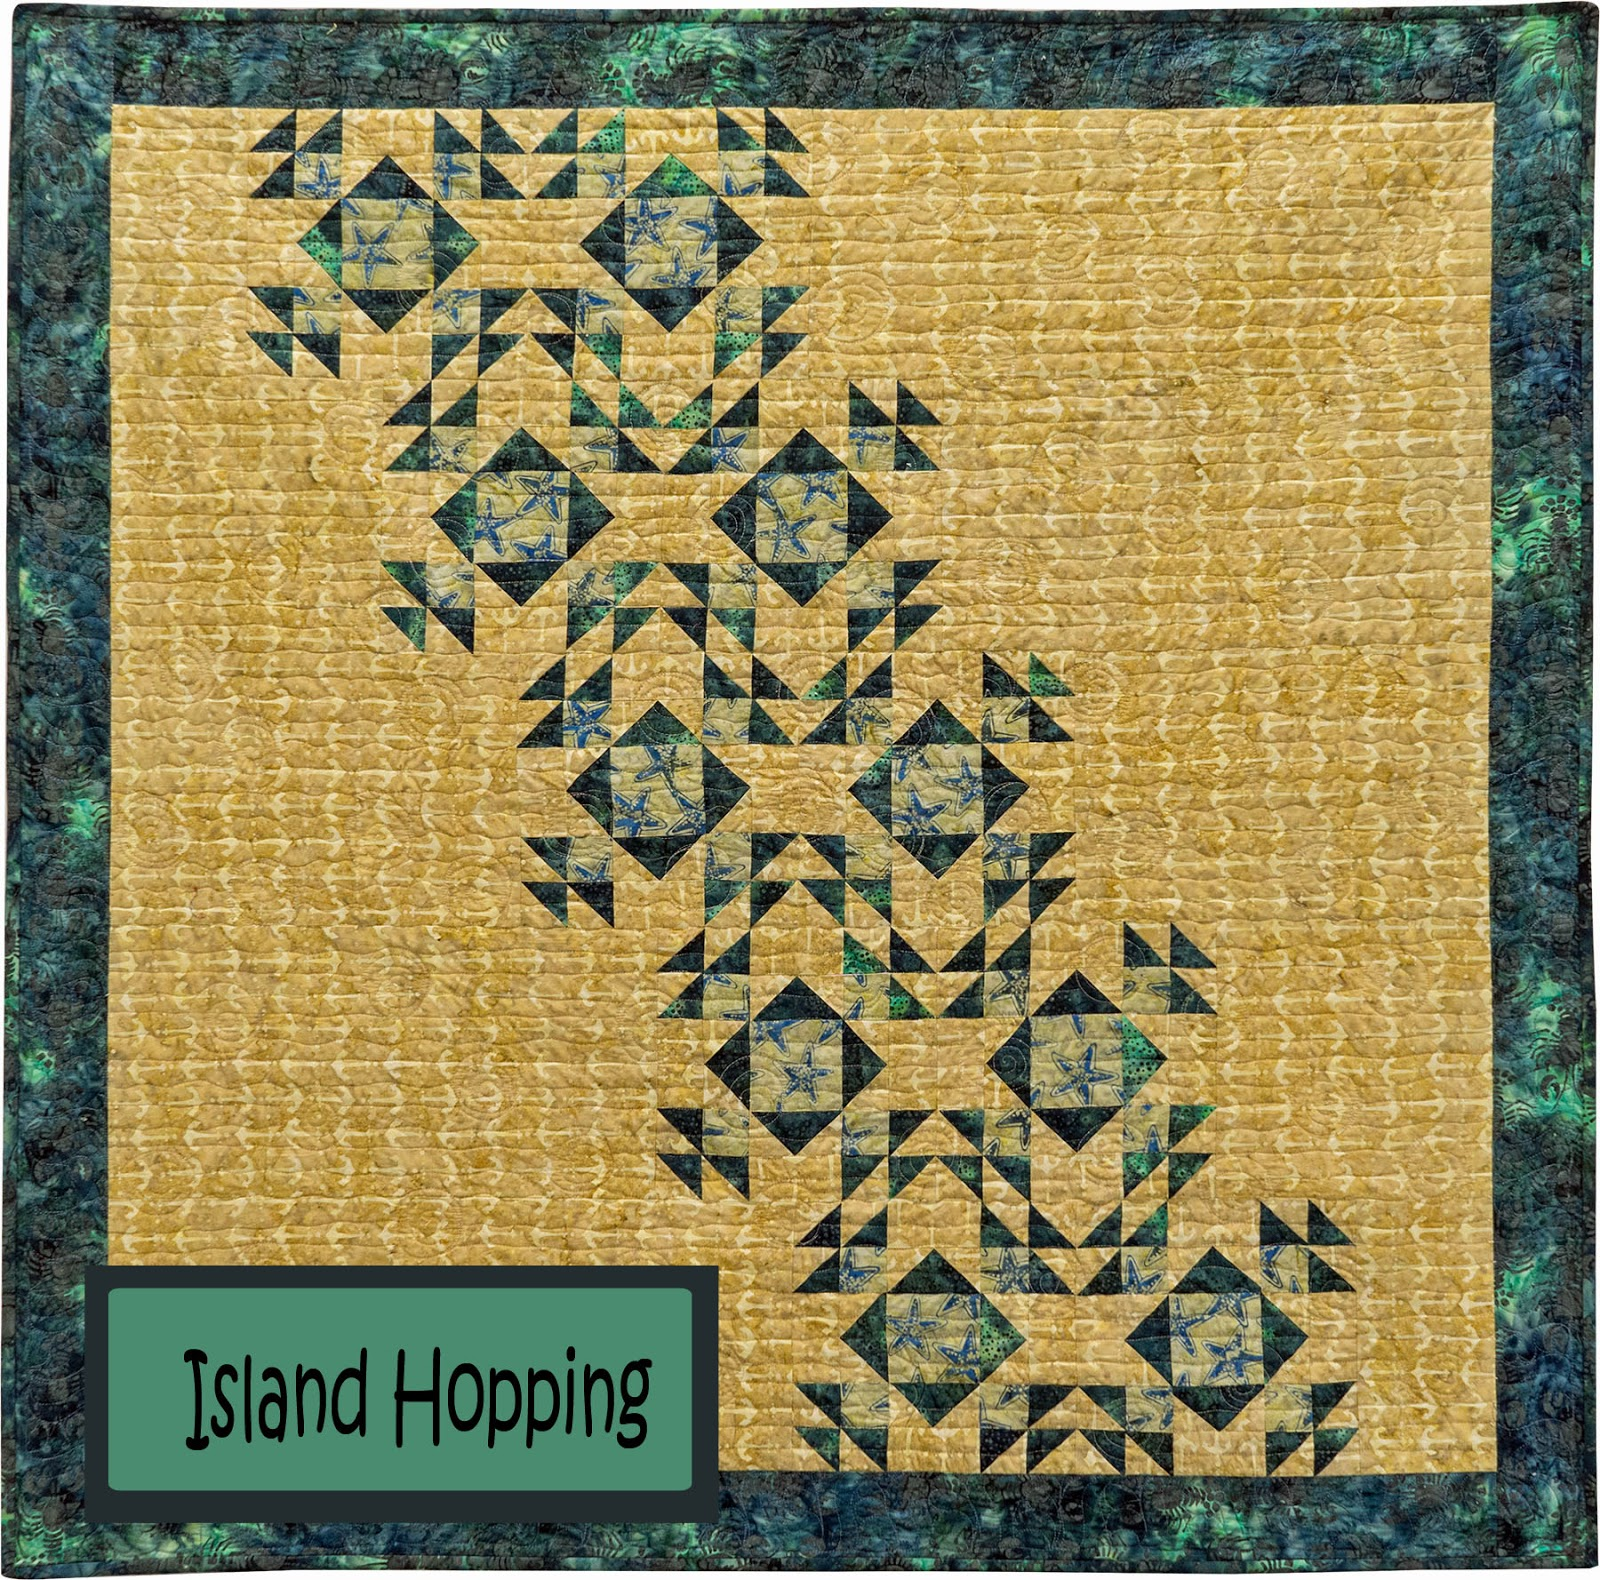 Yellow Cat Quilt Designs: Let\'s go Island Hopping at Market